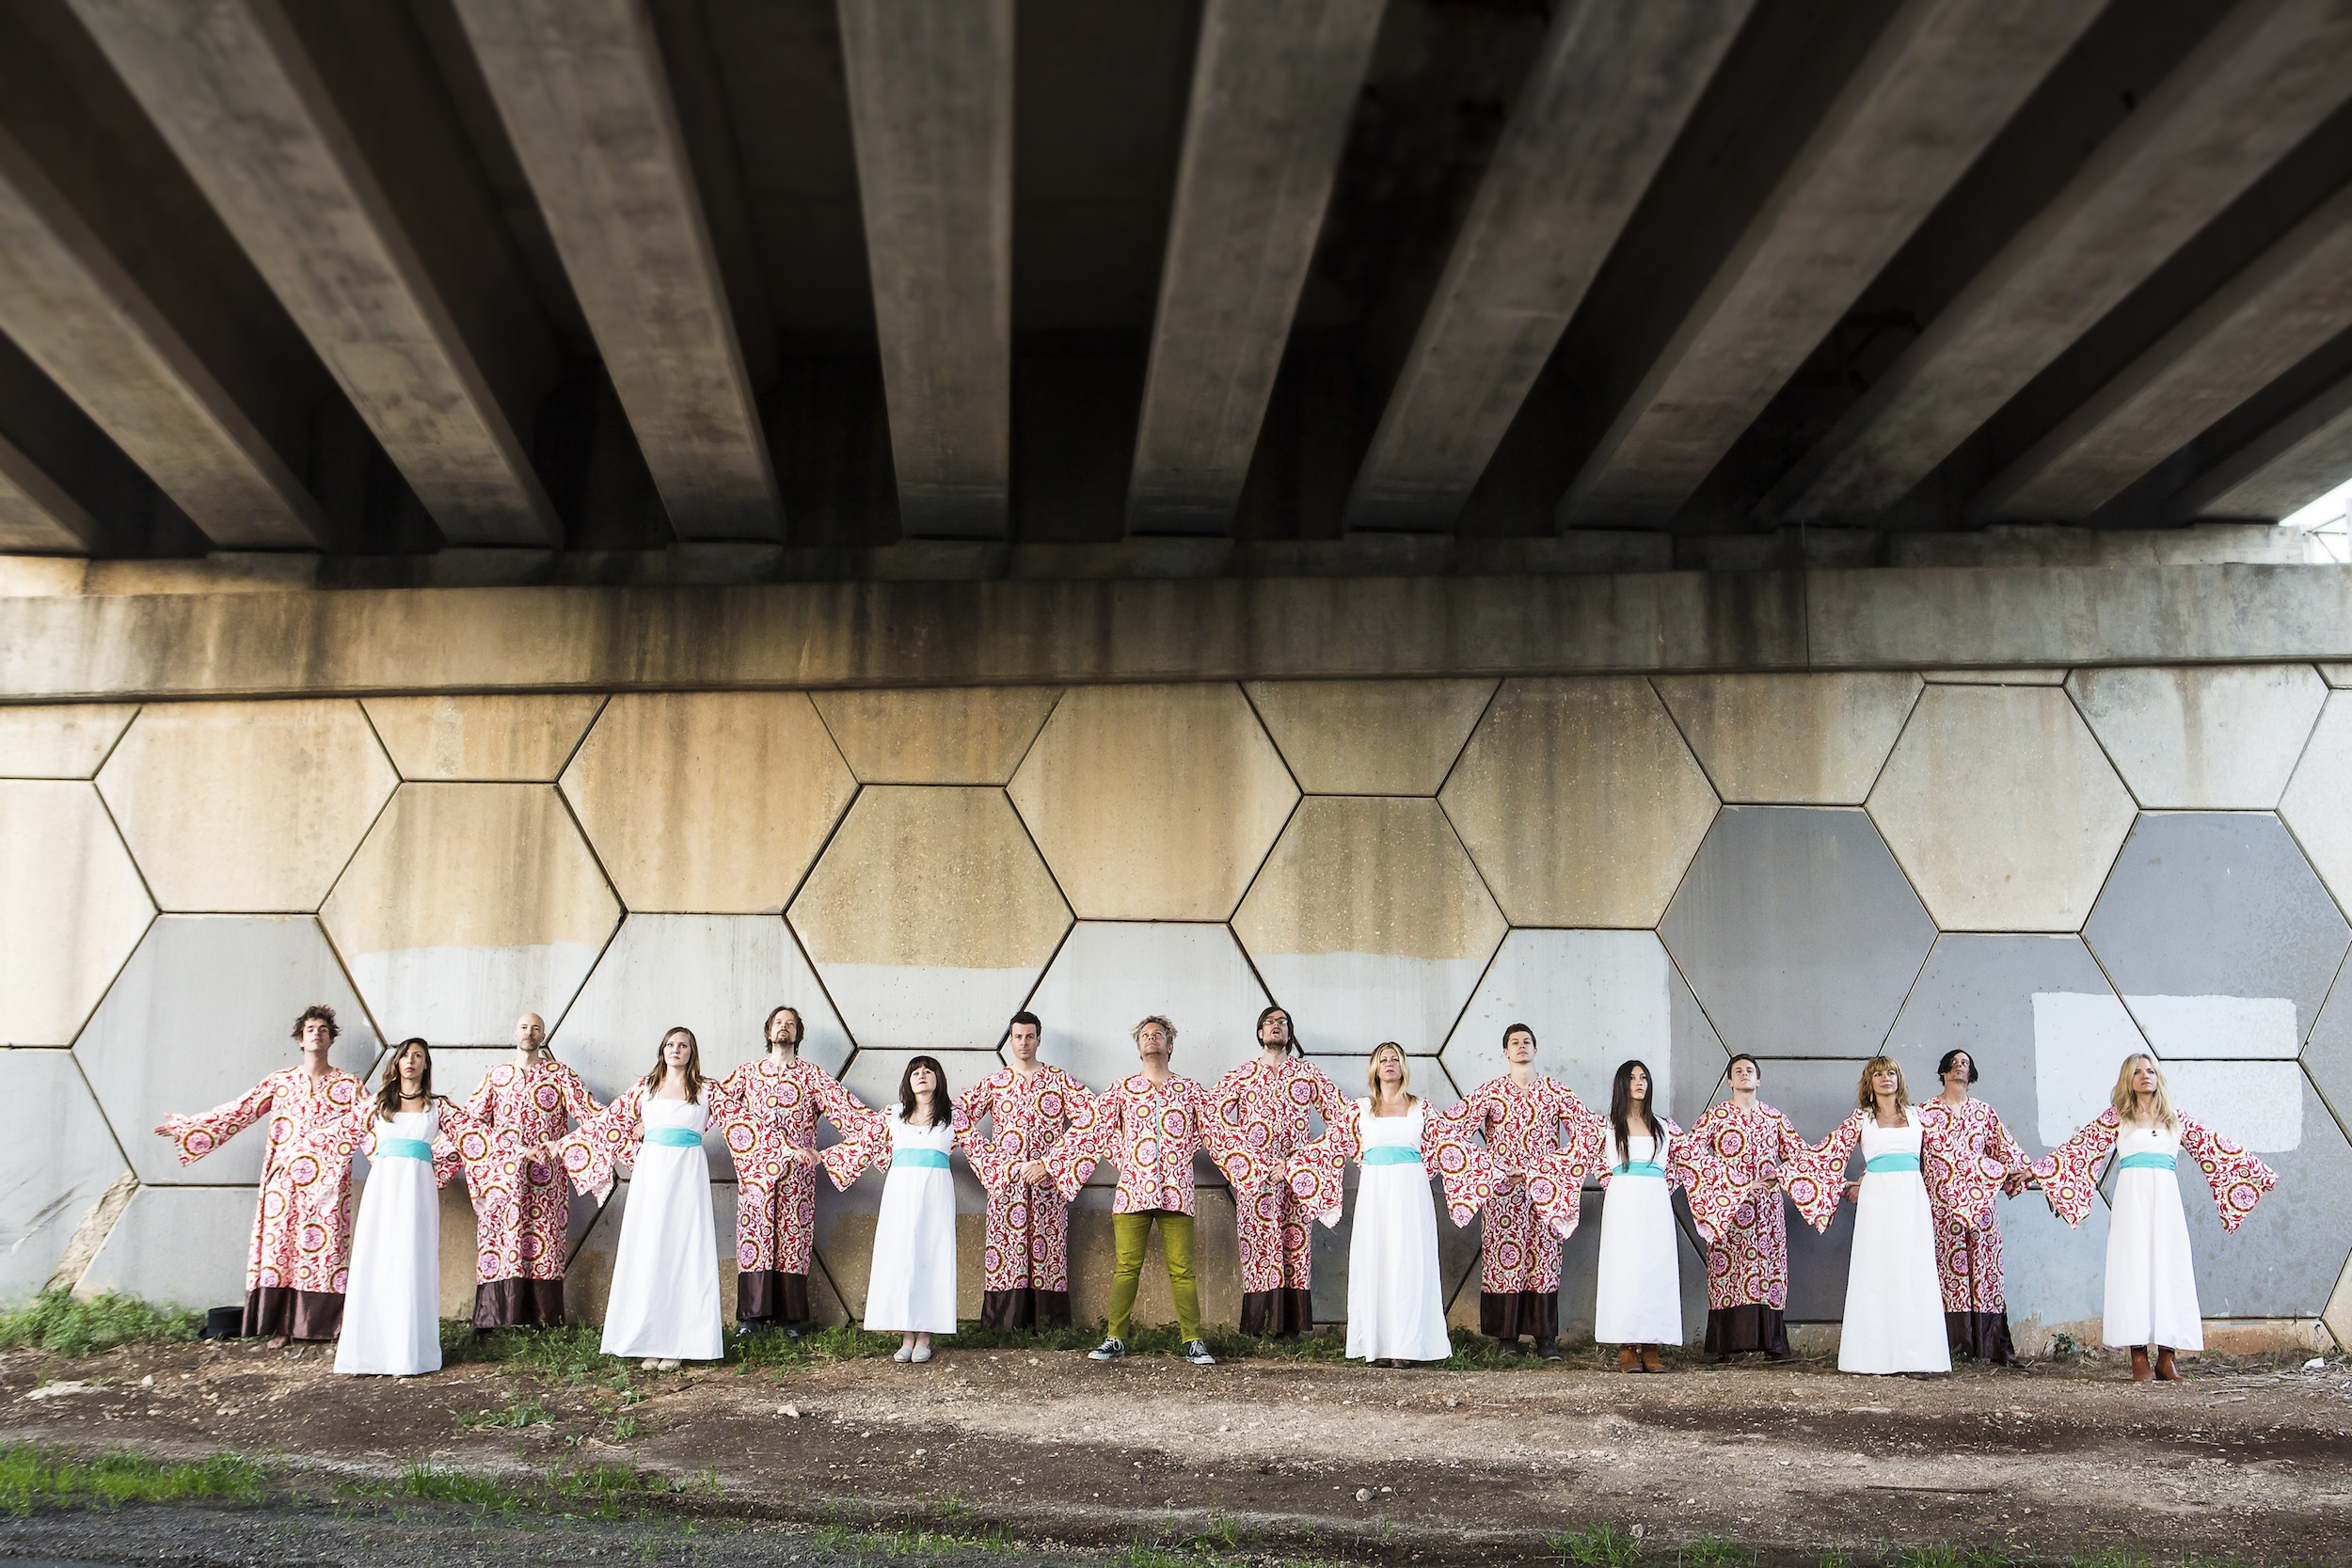 The Polyphonic Spree Live on FUV